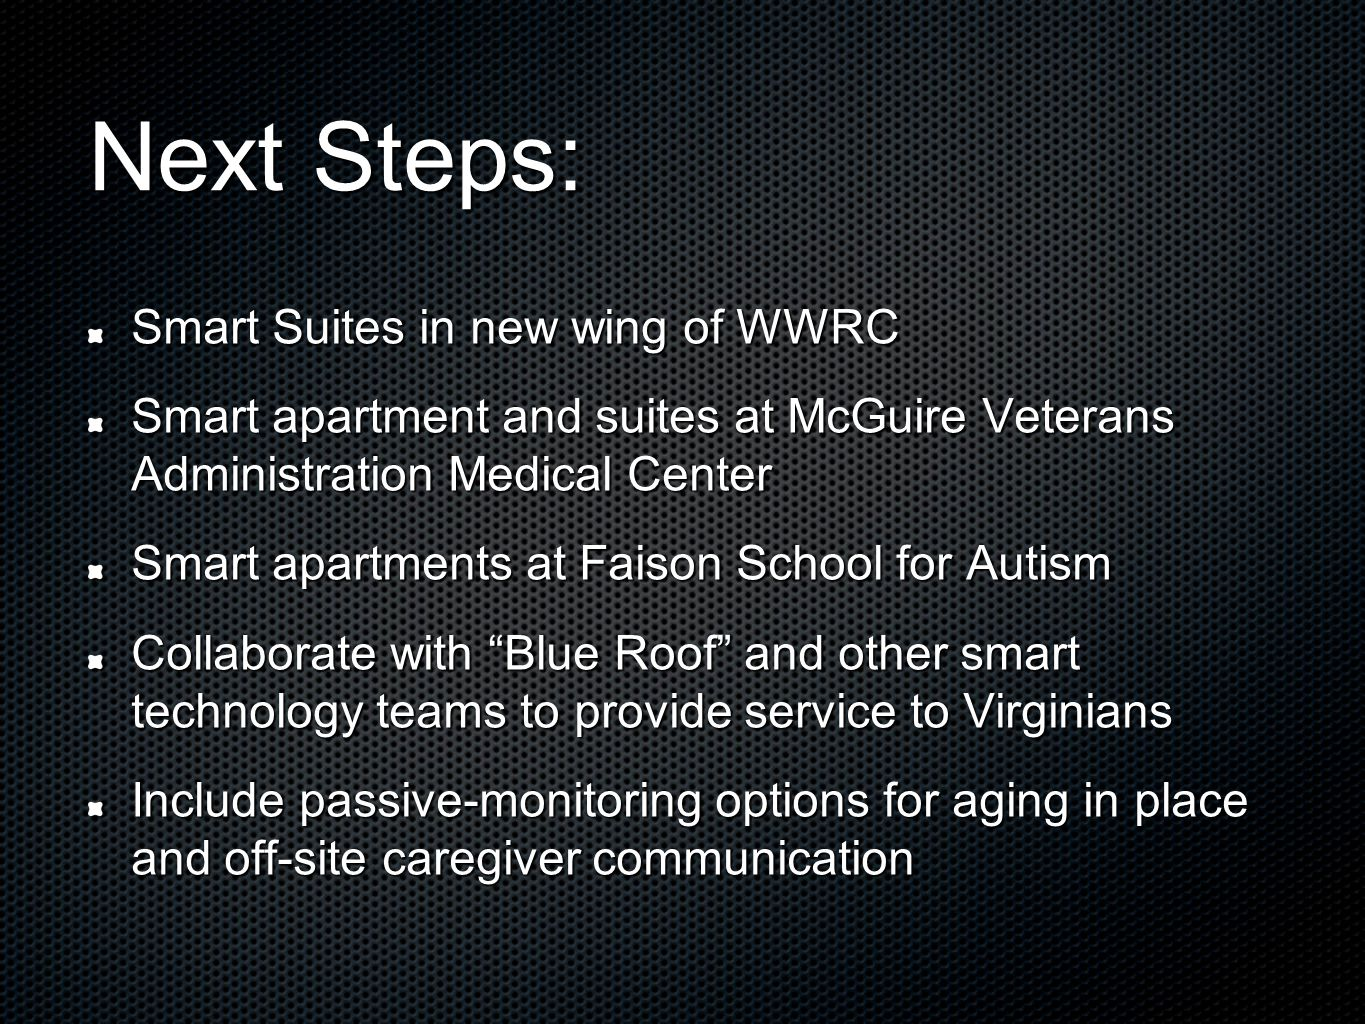 Next Steps: Smart Suites in new wing of WWRC Smart apartment and suites at McGuire Veterans Administration Medical Center Smart apartments at Faison School for Autism Collaborate with Blue Roof and other smart technology teams to provide service to Virginians Include passive-monitoring options for aging in place and off-site caregiver communication